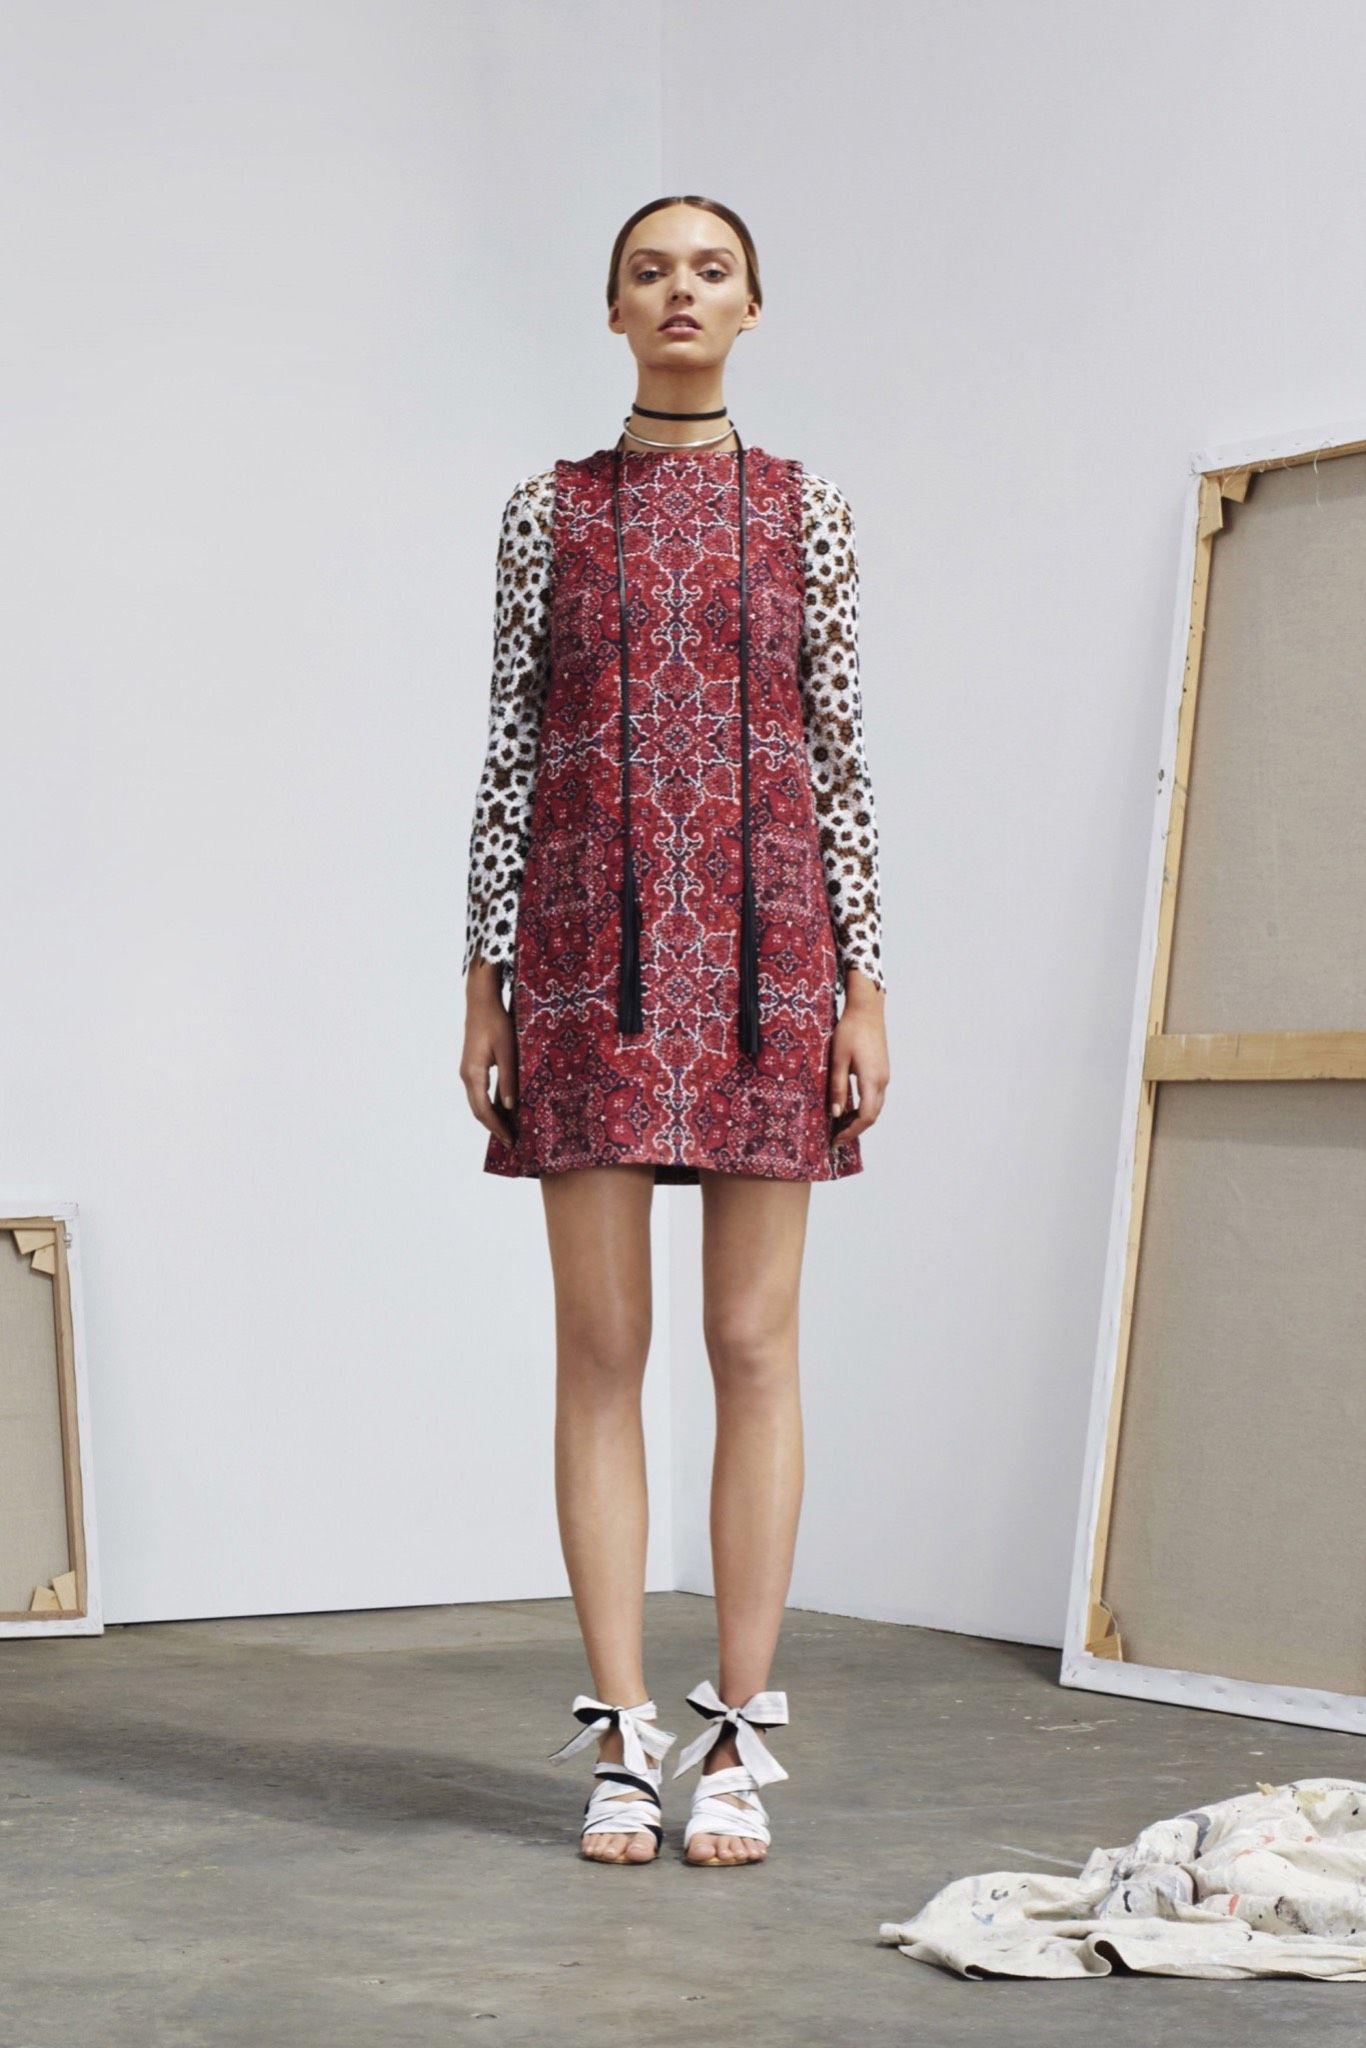 Zimmermann resort collection gallery style